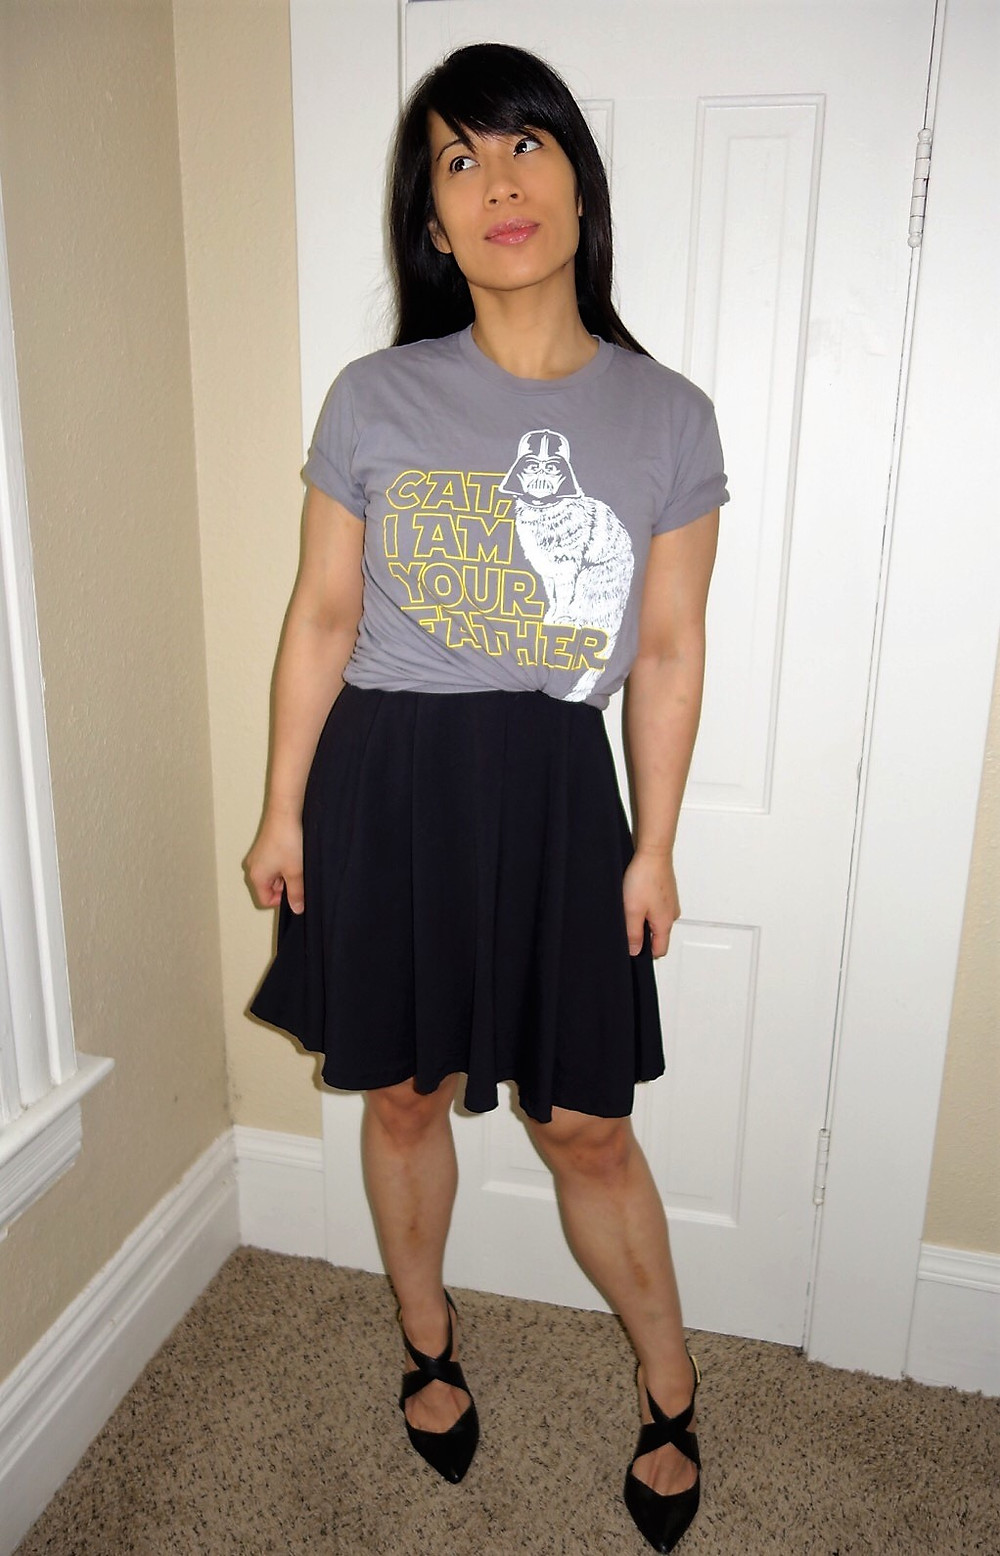 Kat wearing a graphic tee shirt with a skater dress